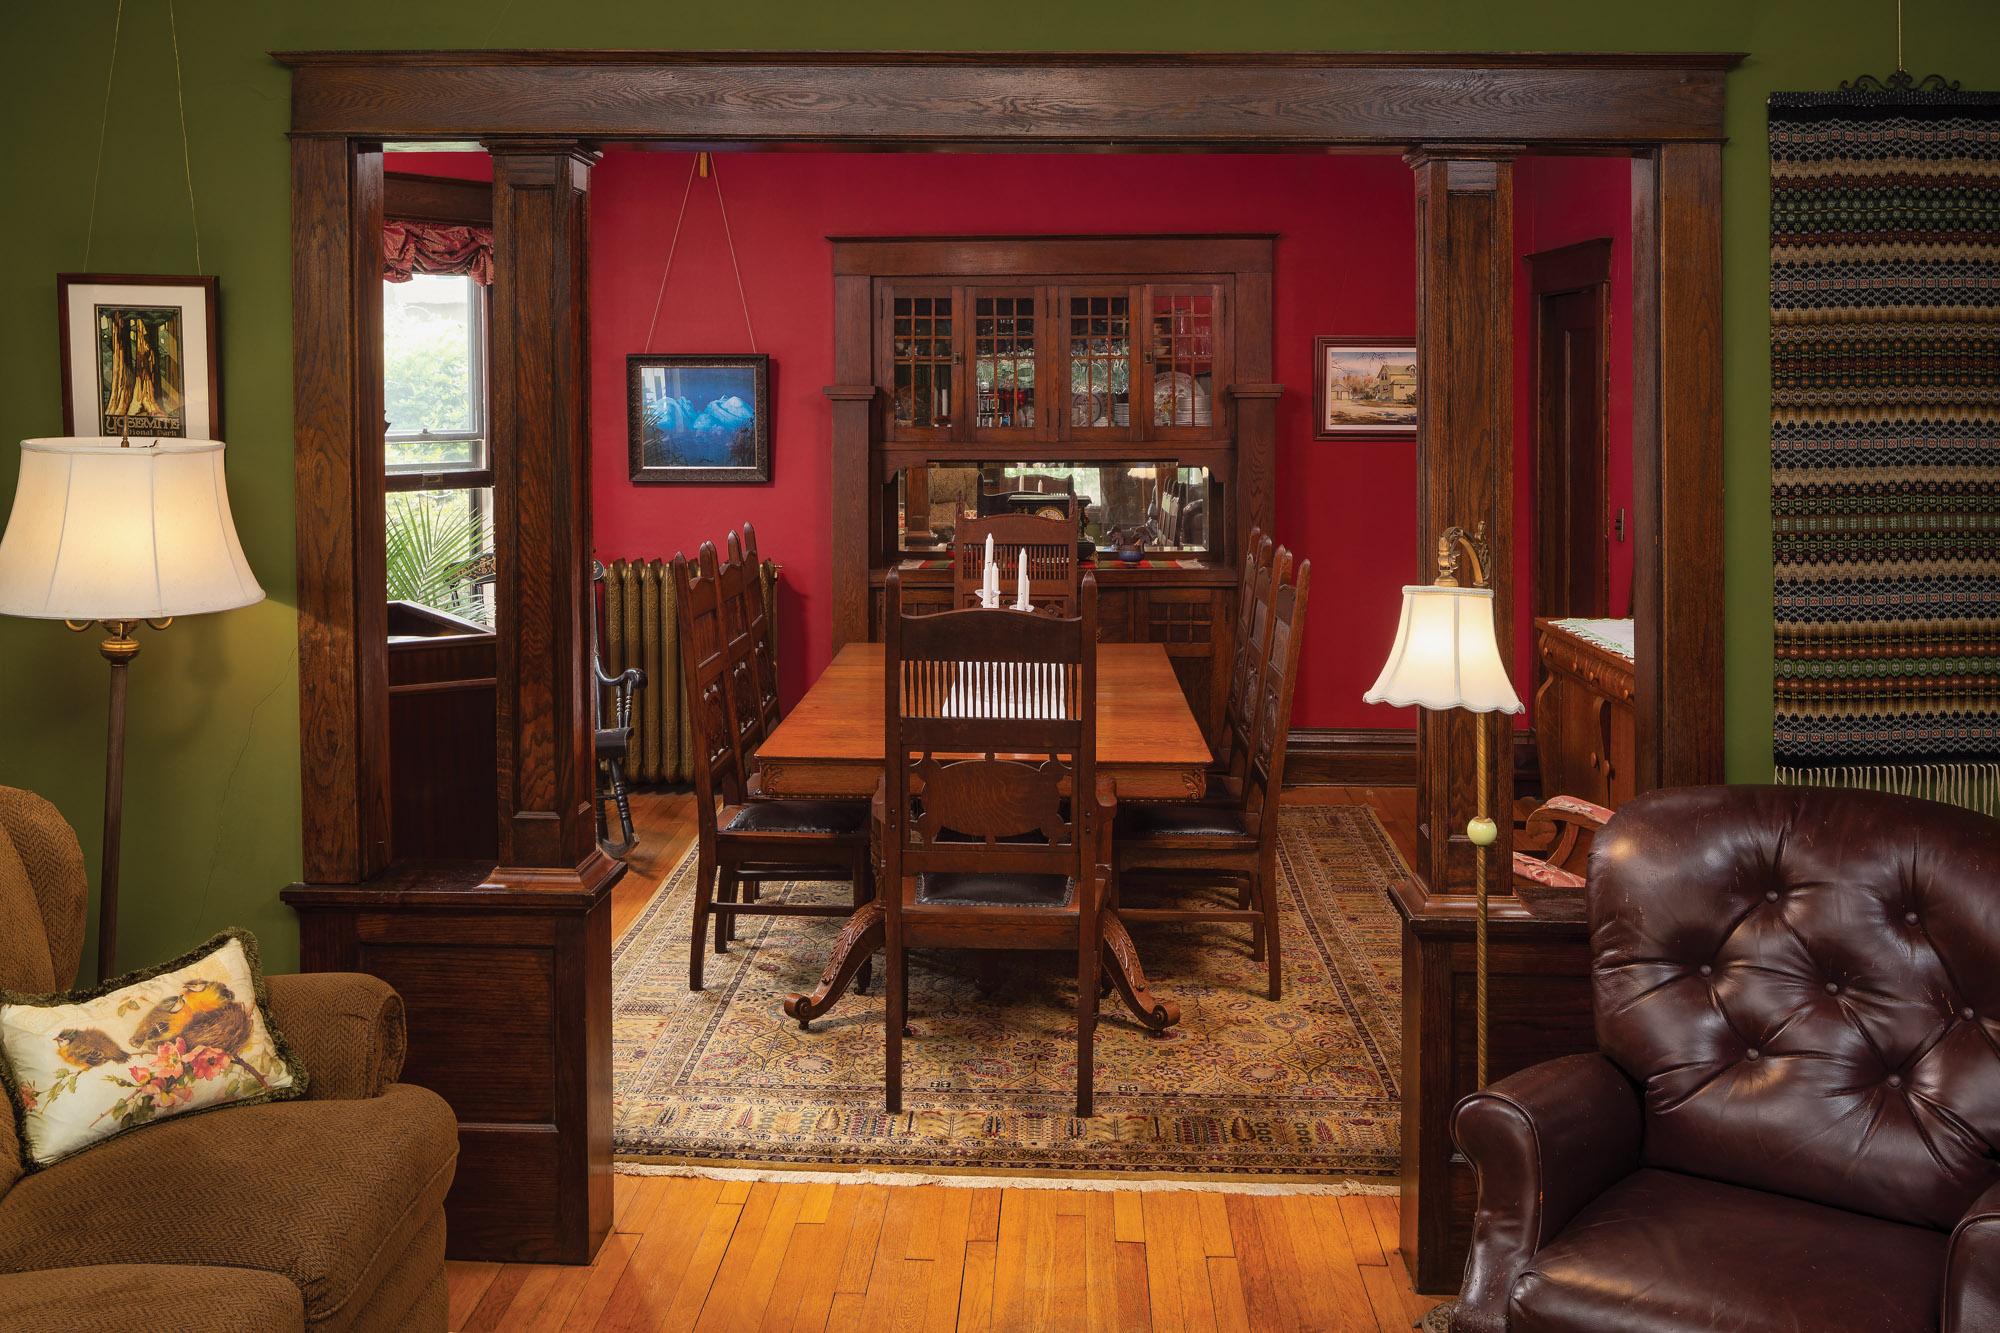 The Erstads found a carved dining table that can seat 12, and nine matching chairs: They bought six of the chairs at an auction, and, a few days later, discovered three identical chairs in a shop. The room has its original built-in buffet; the swinging door opens to the kitchen.